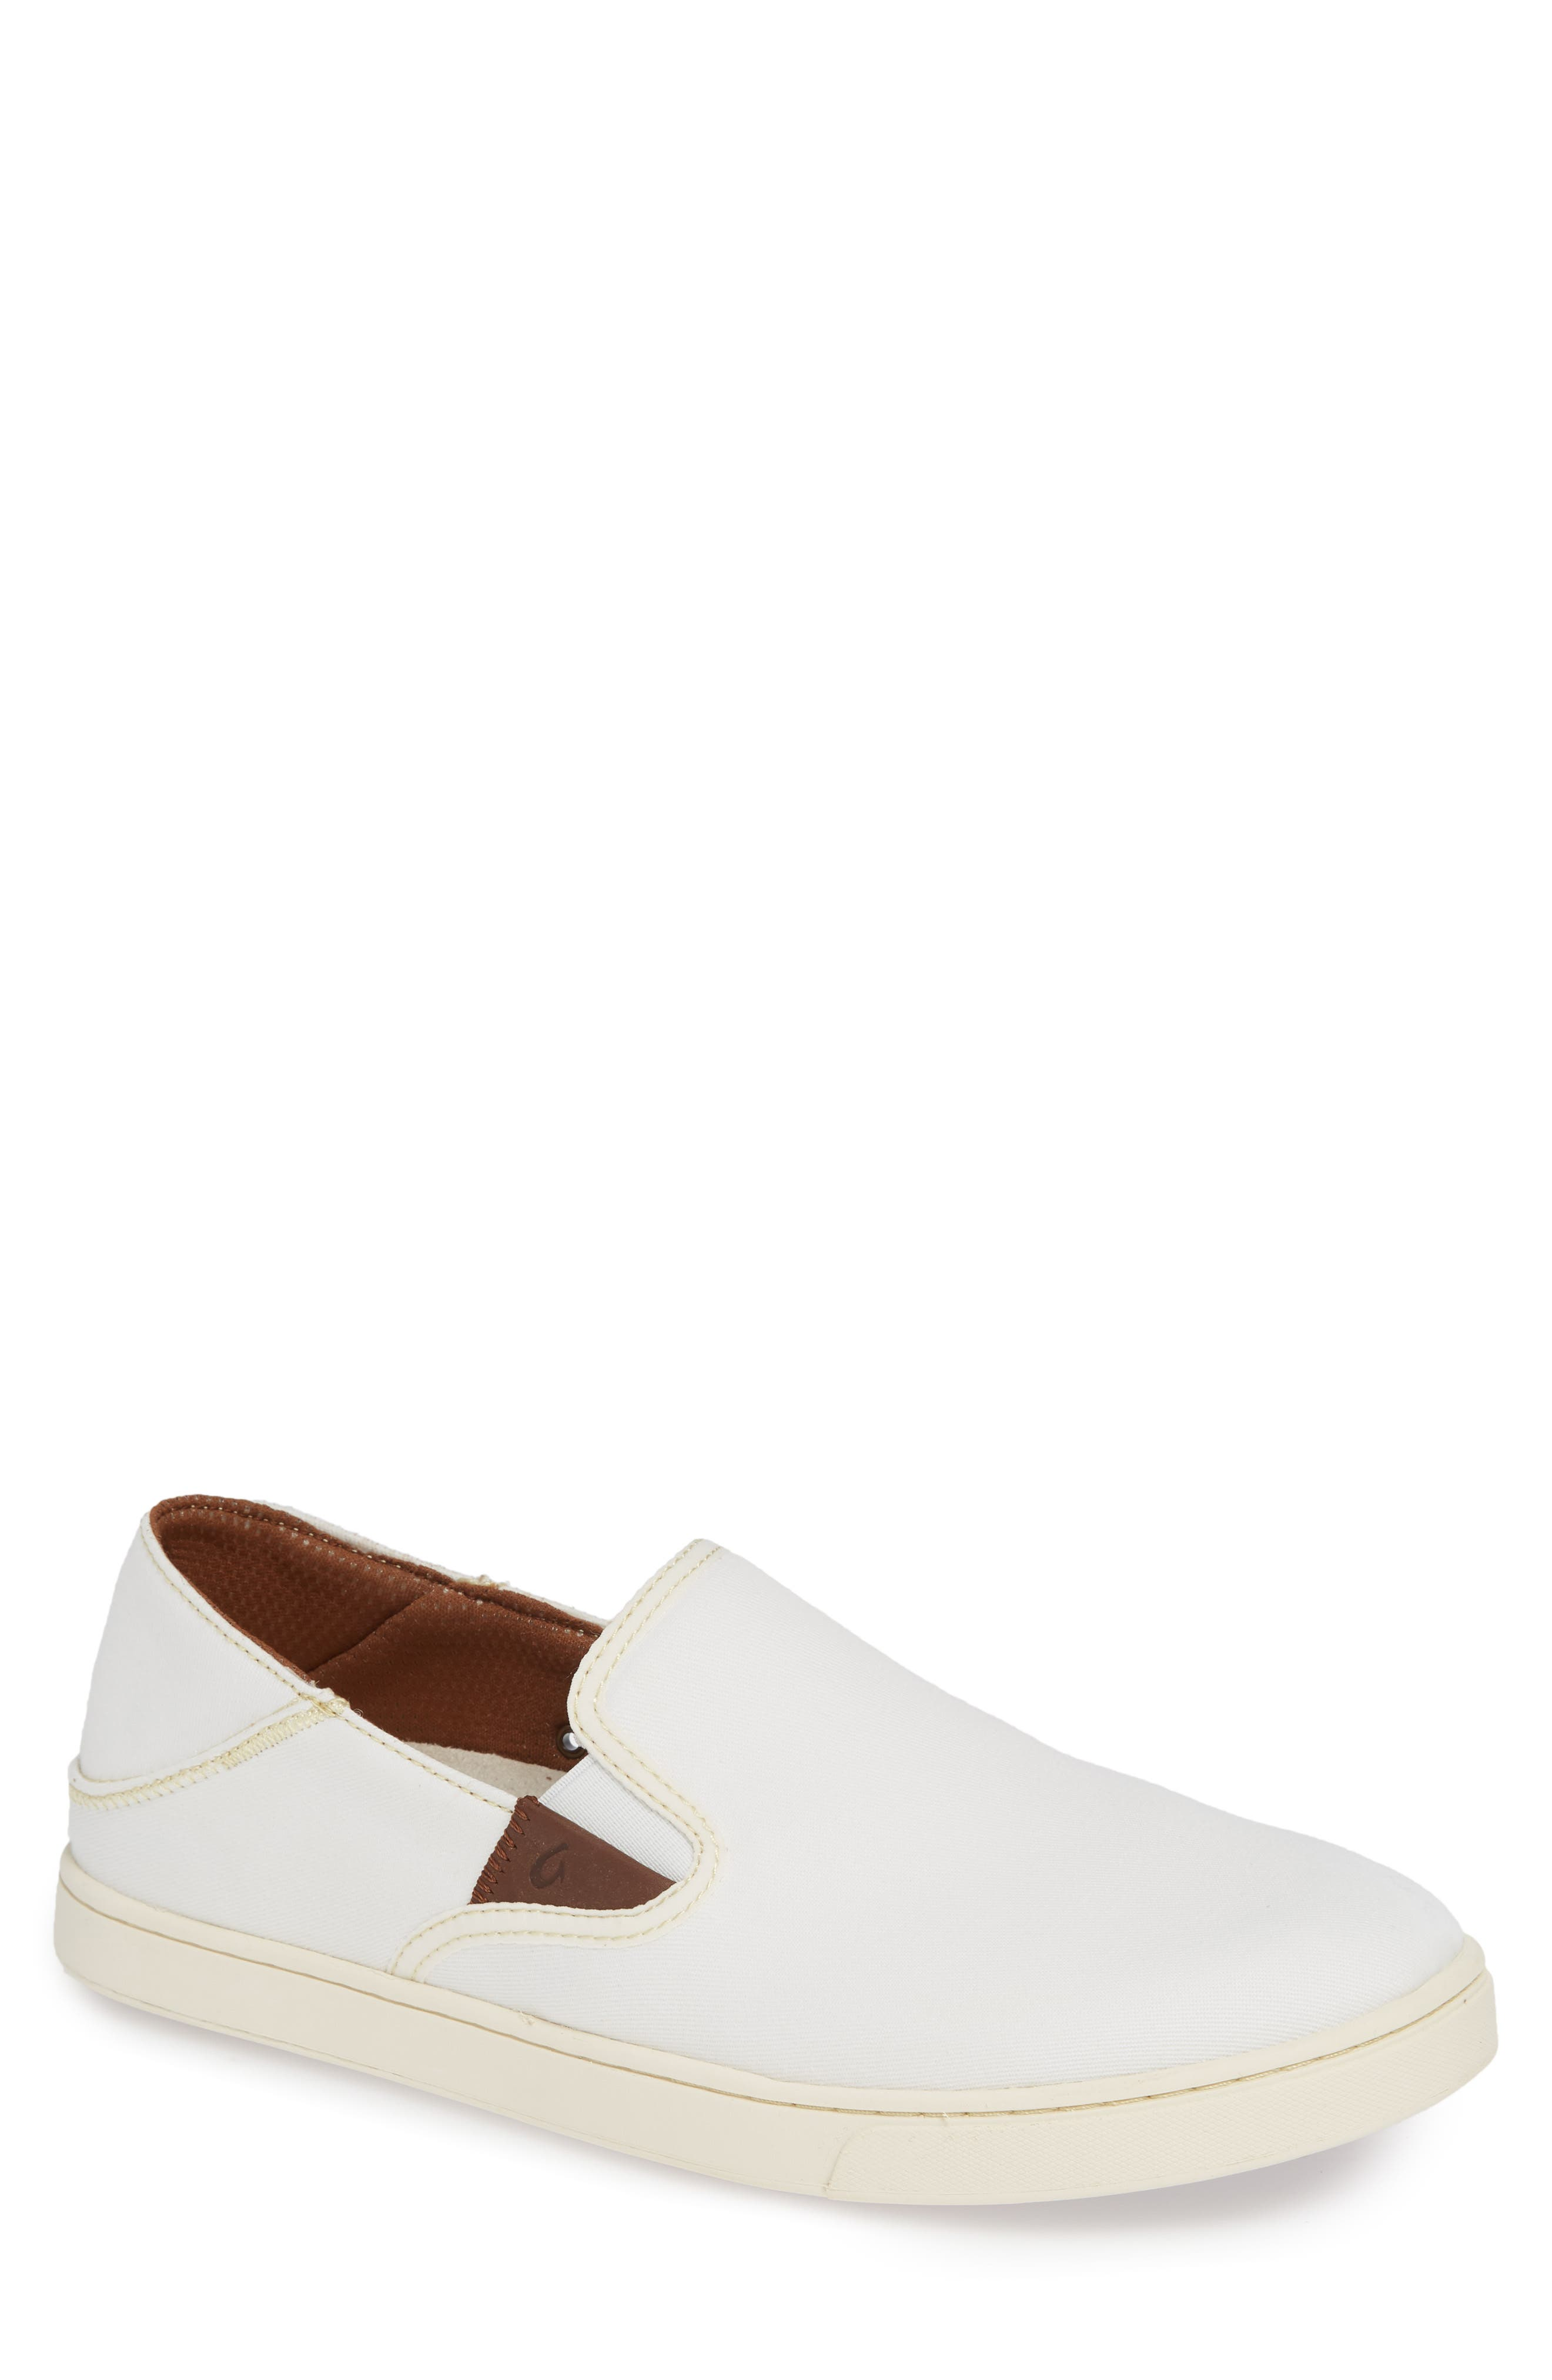 Kahu Collapsible Slip-On Sneaker,                         Main,                         color, 259